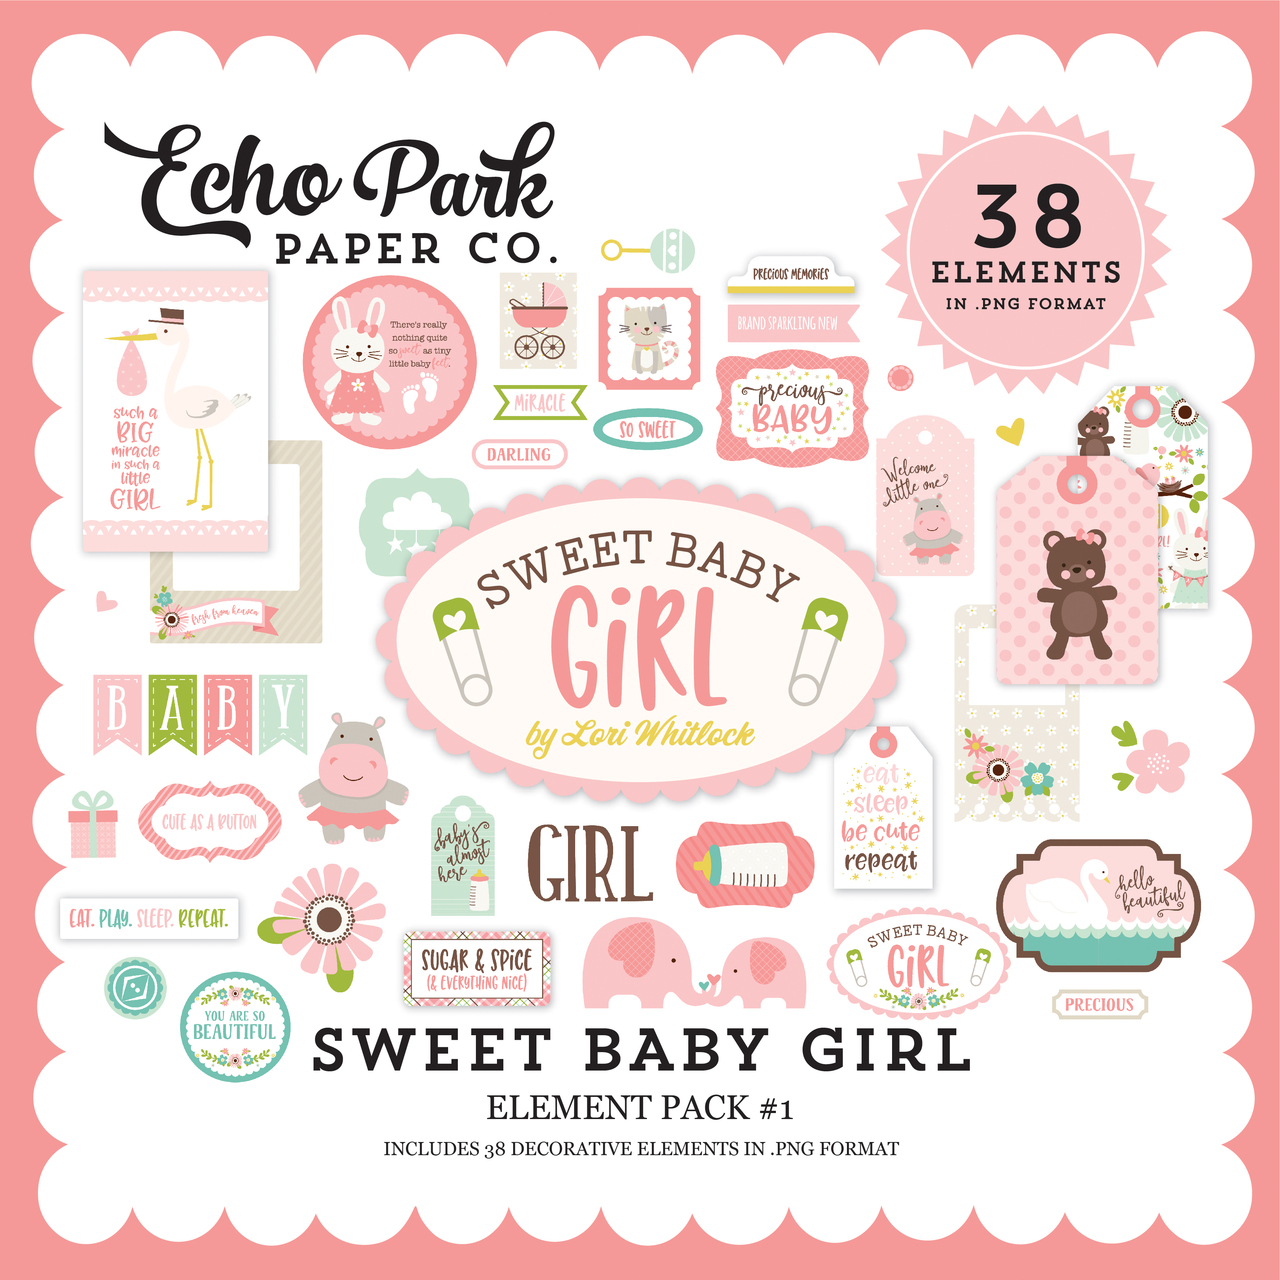 Sweet Baby Girl Element Pack #1